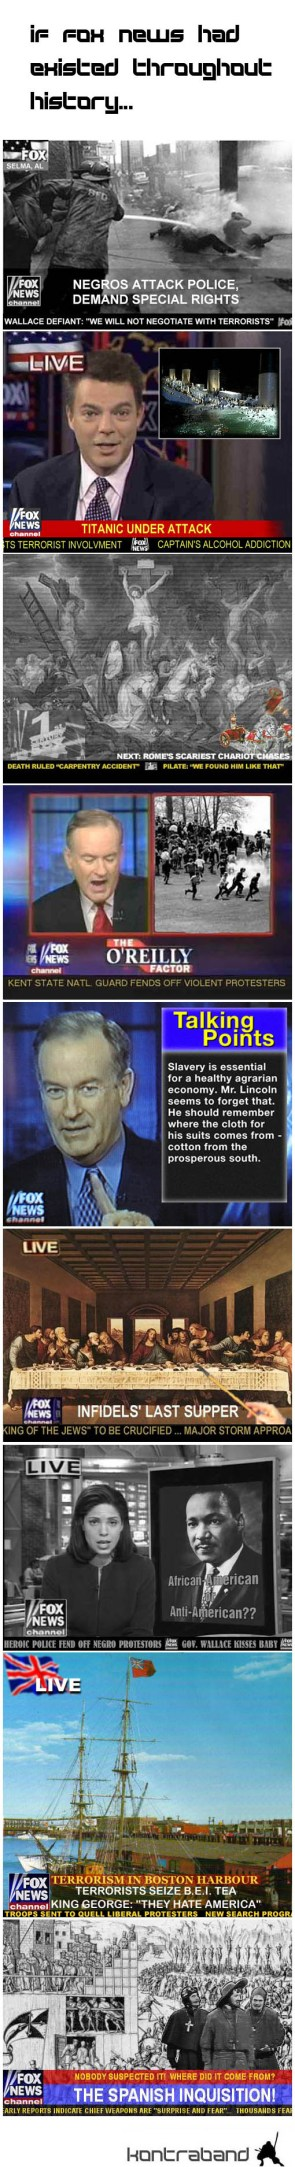 If Fox News had existed throughout history…